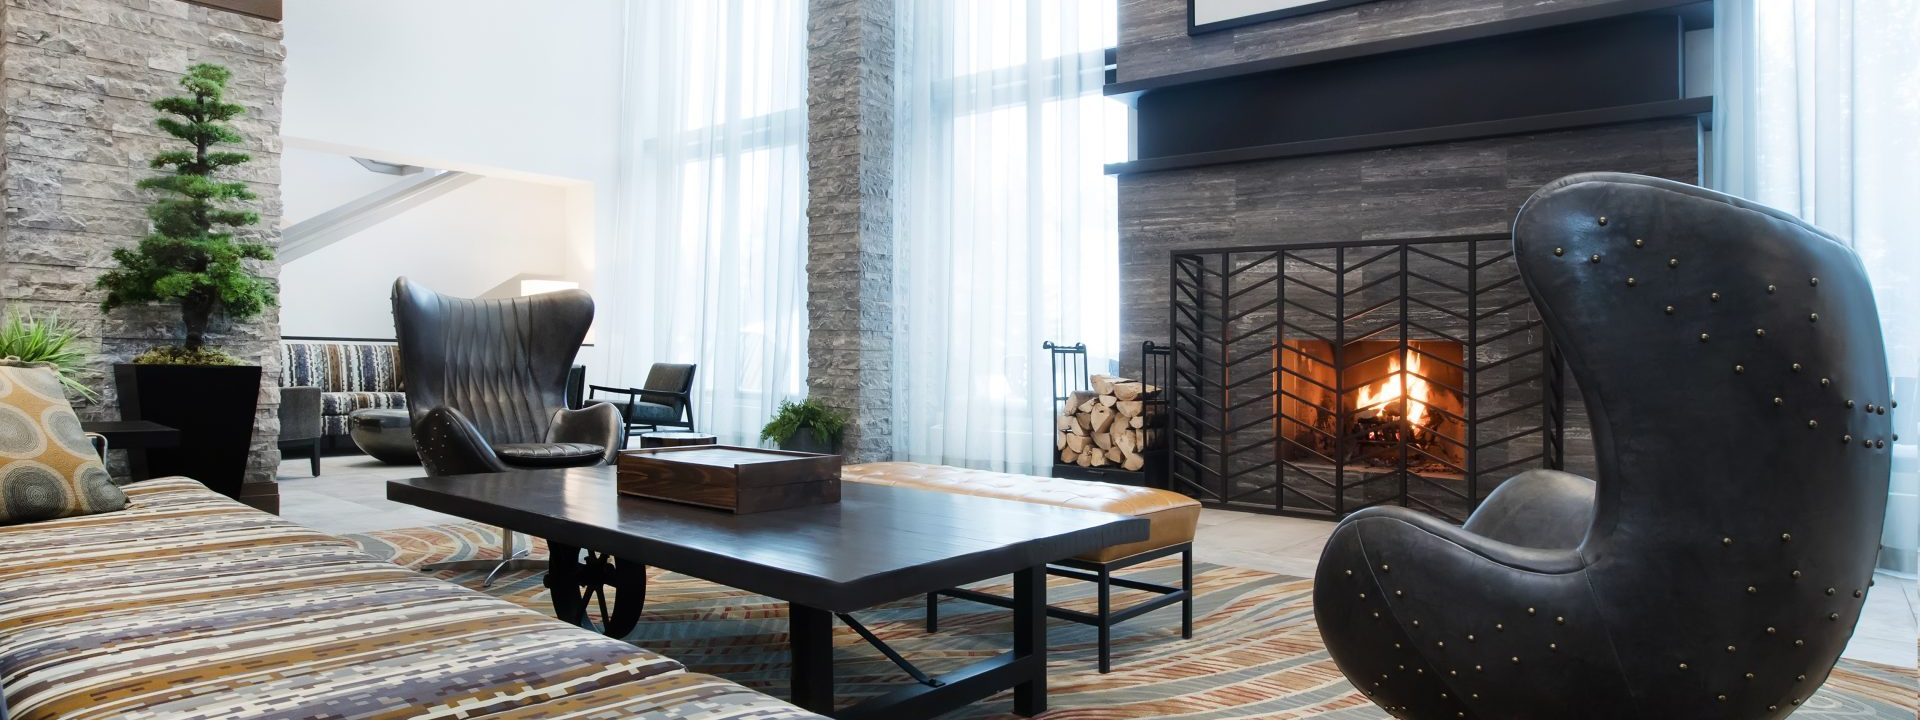 Hotels for the holidays in Canada's Rocky Mountains